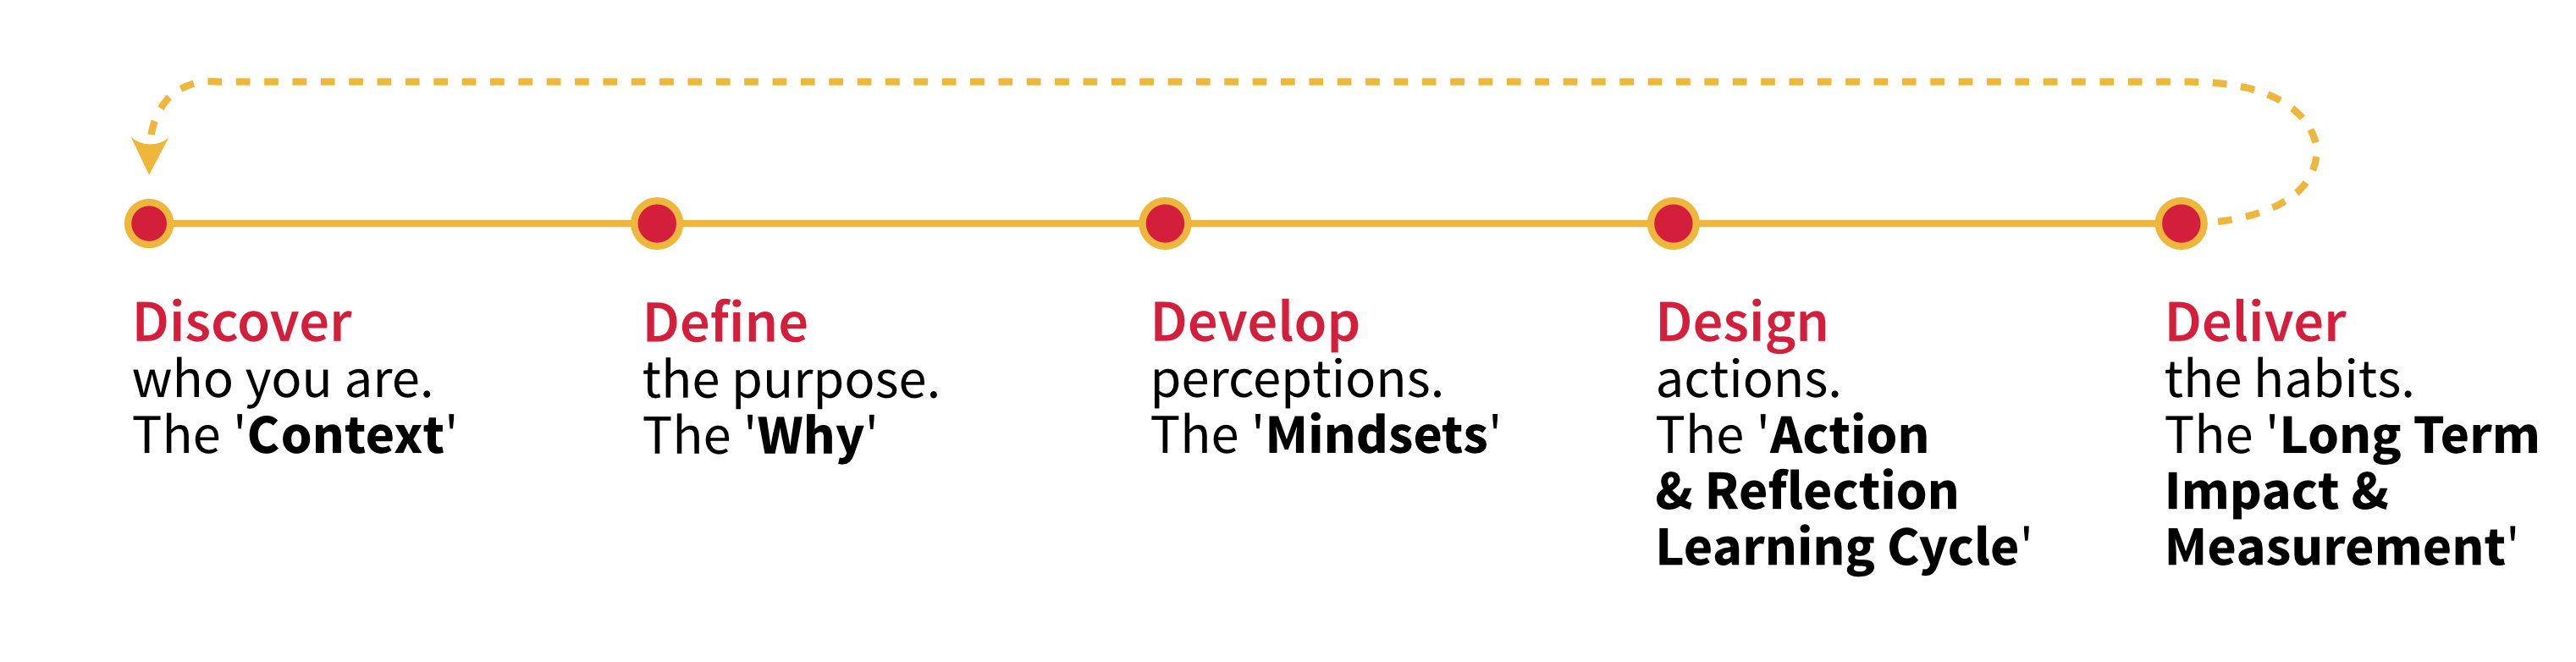 Coaching process: Discover - Define - Develop - Design - Deliver